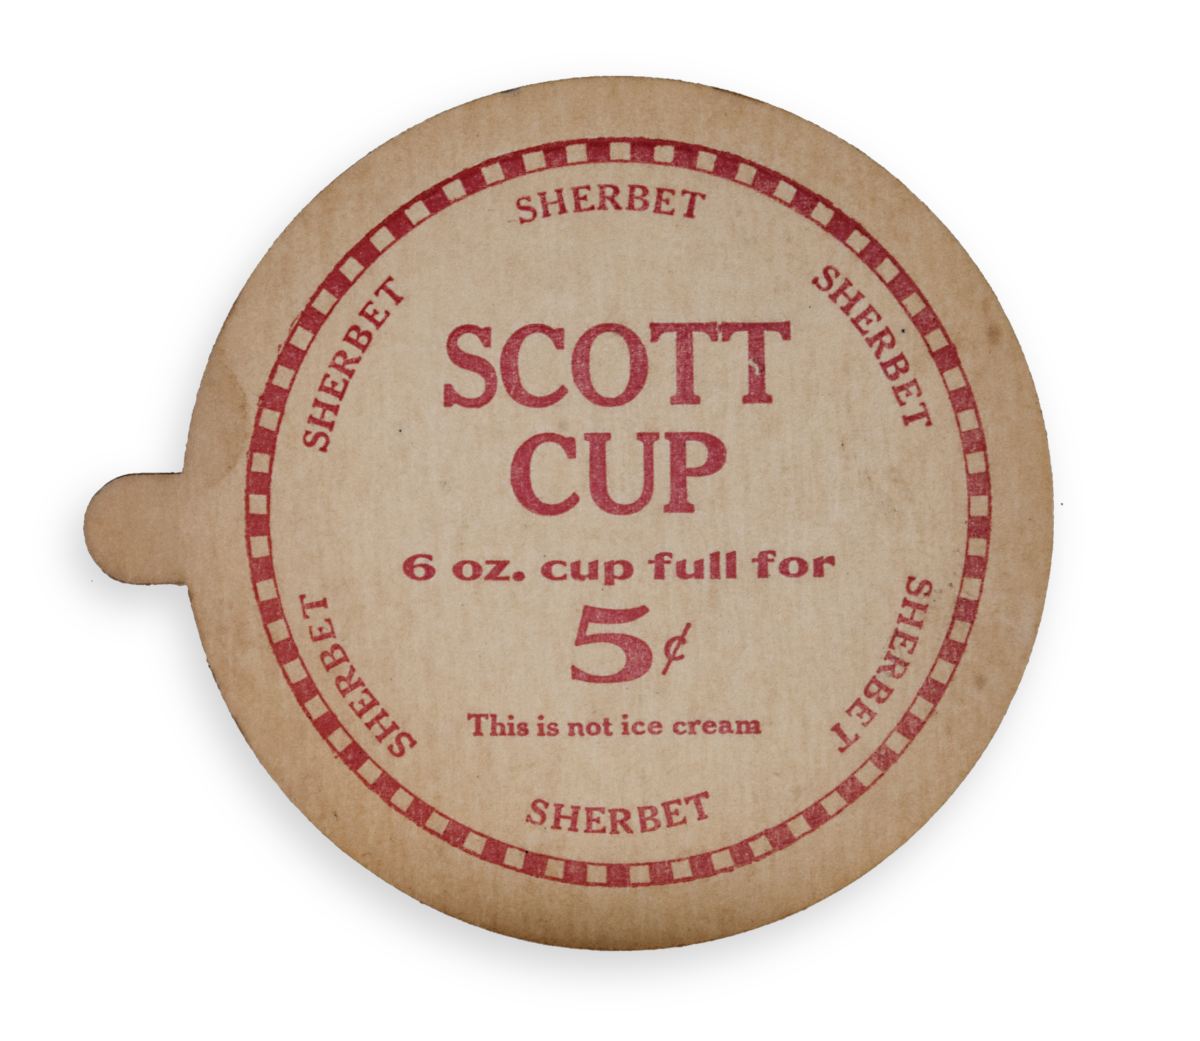 Cardboard cap for Scott Brothers sherbet